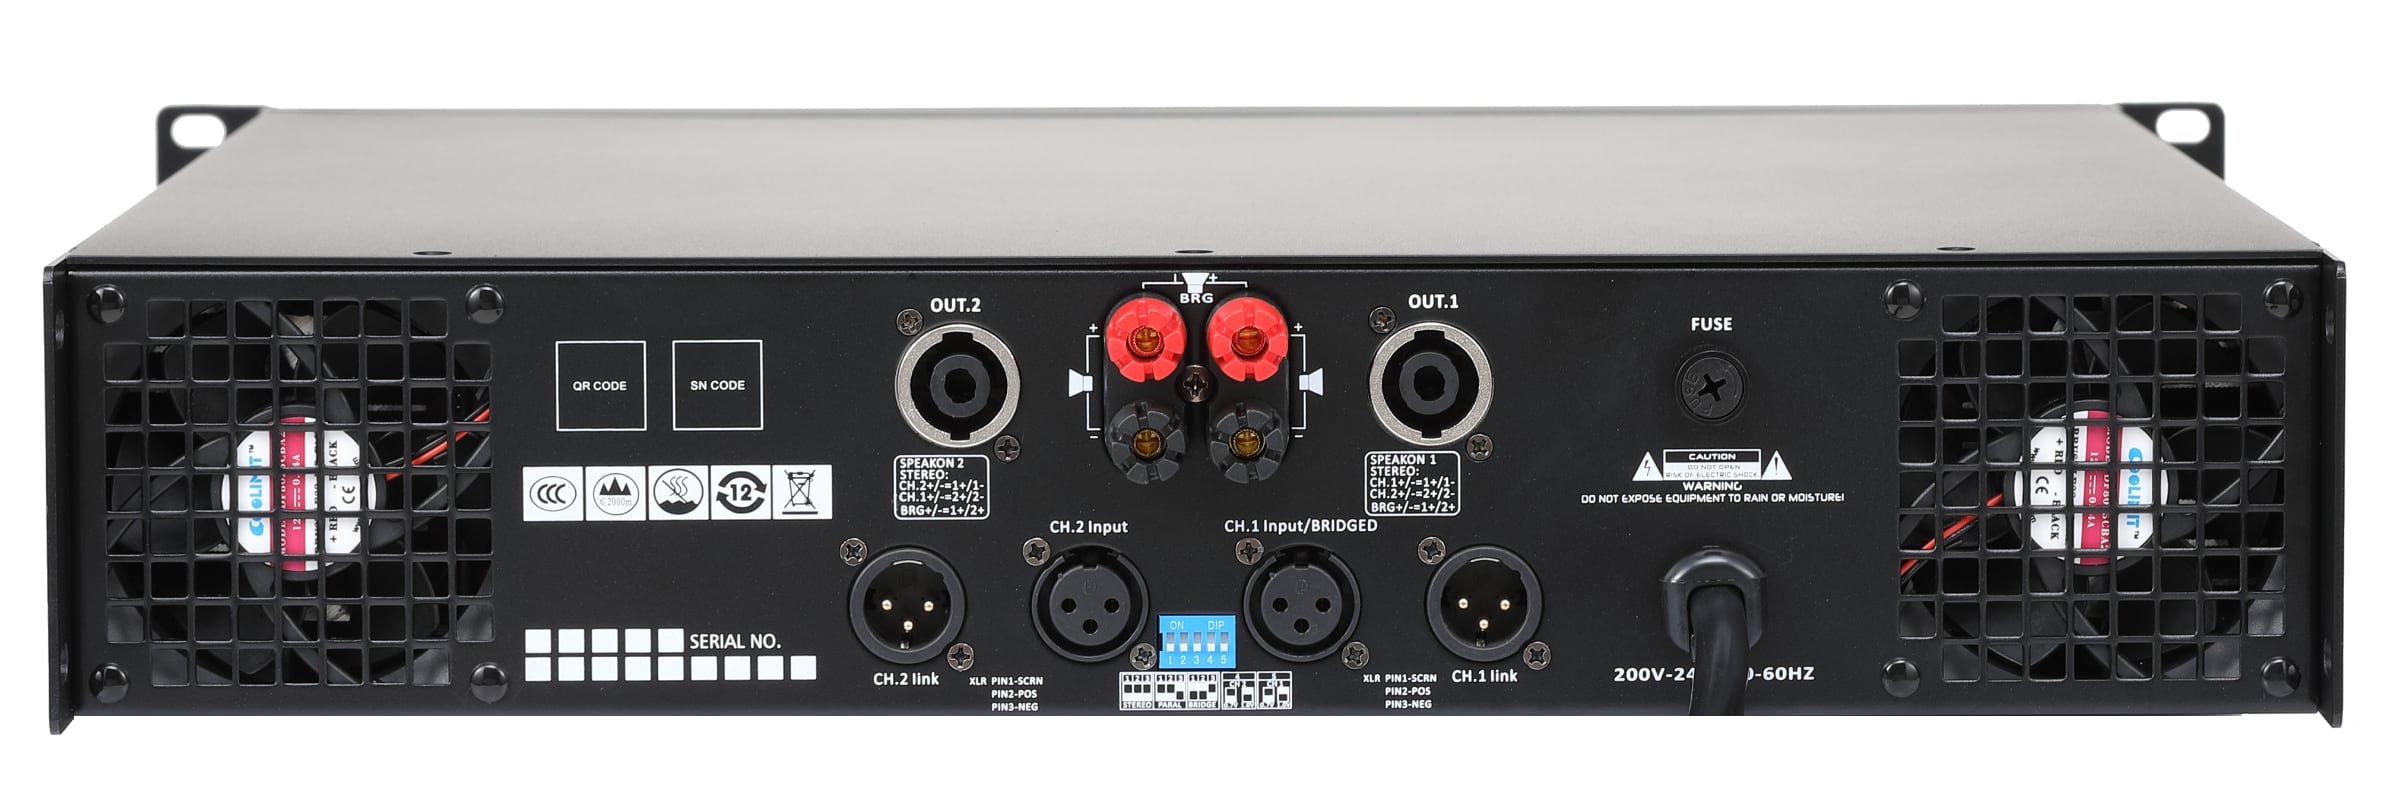 Công suất AAP DX-4002